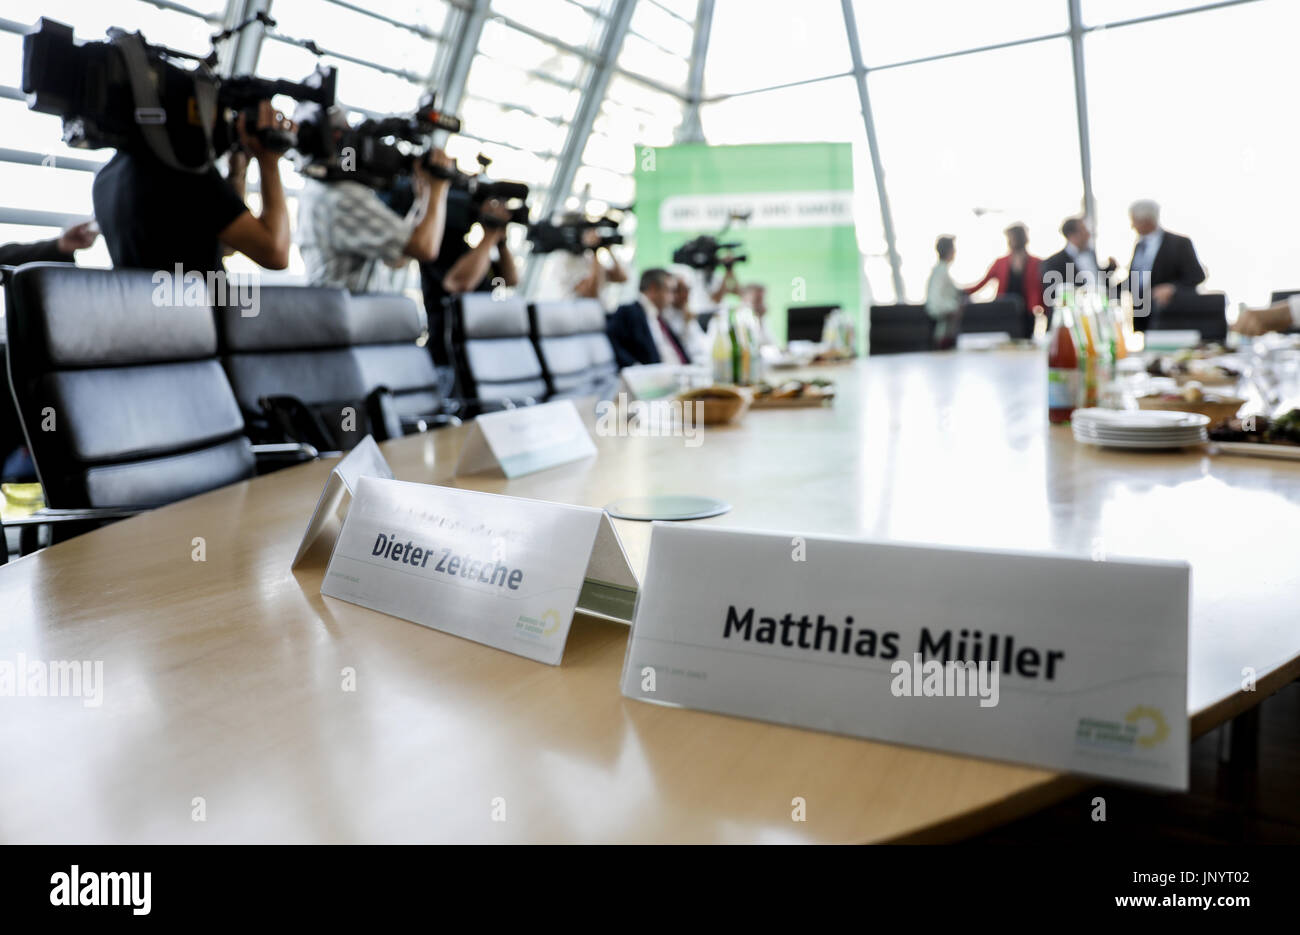 dpatop - The name plates of the CEO's of the major German car companies,  Matthias Mueller (R, and  Dieter Zetsche - Stock Image